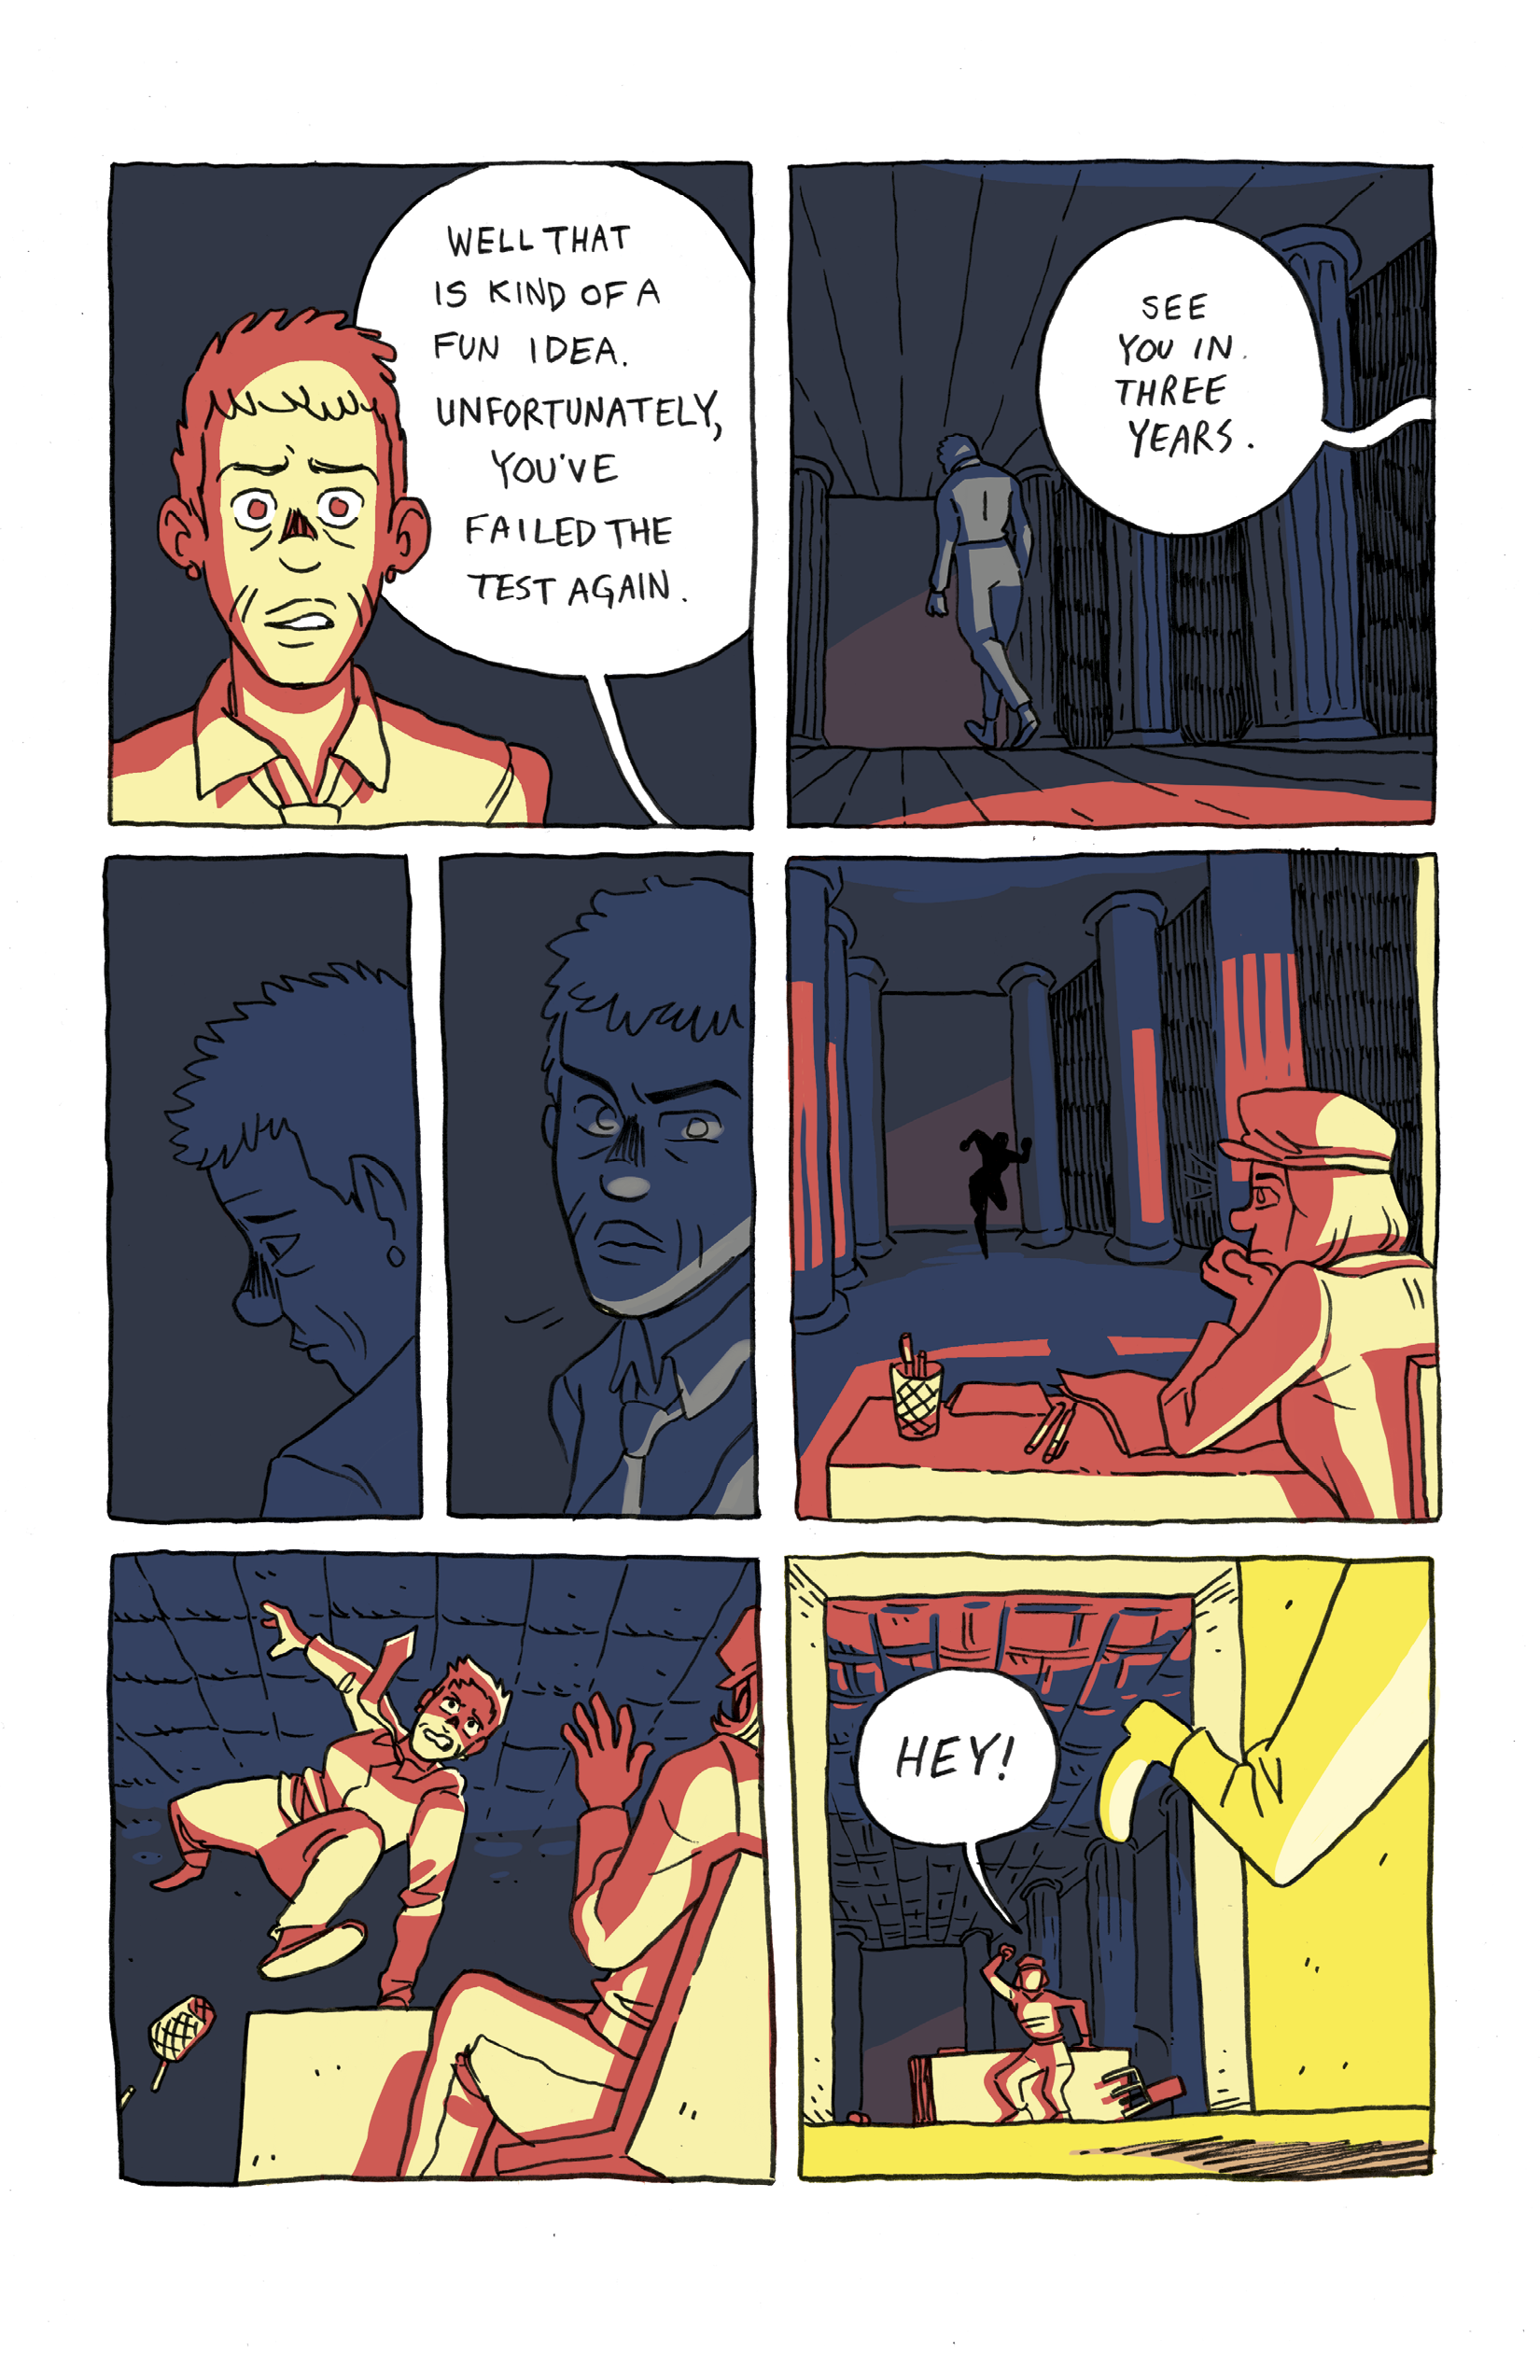 METANOIA_final_001_single_pages7.png